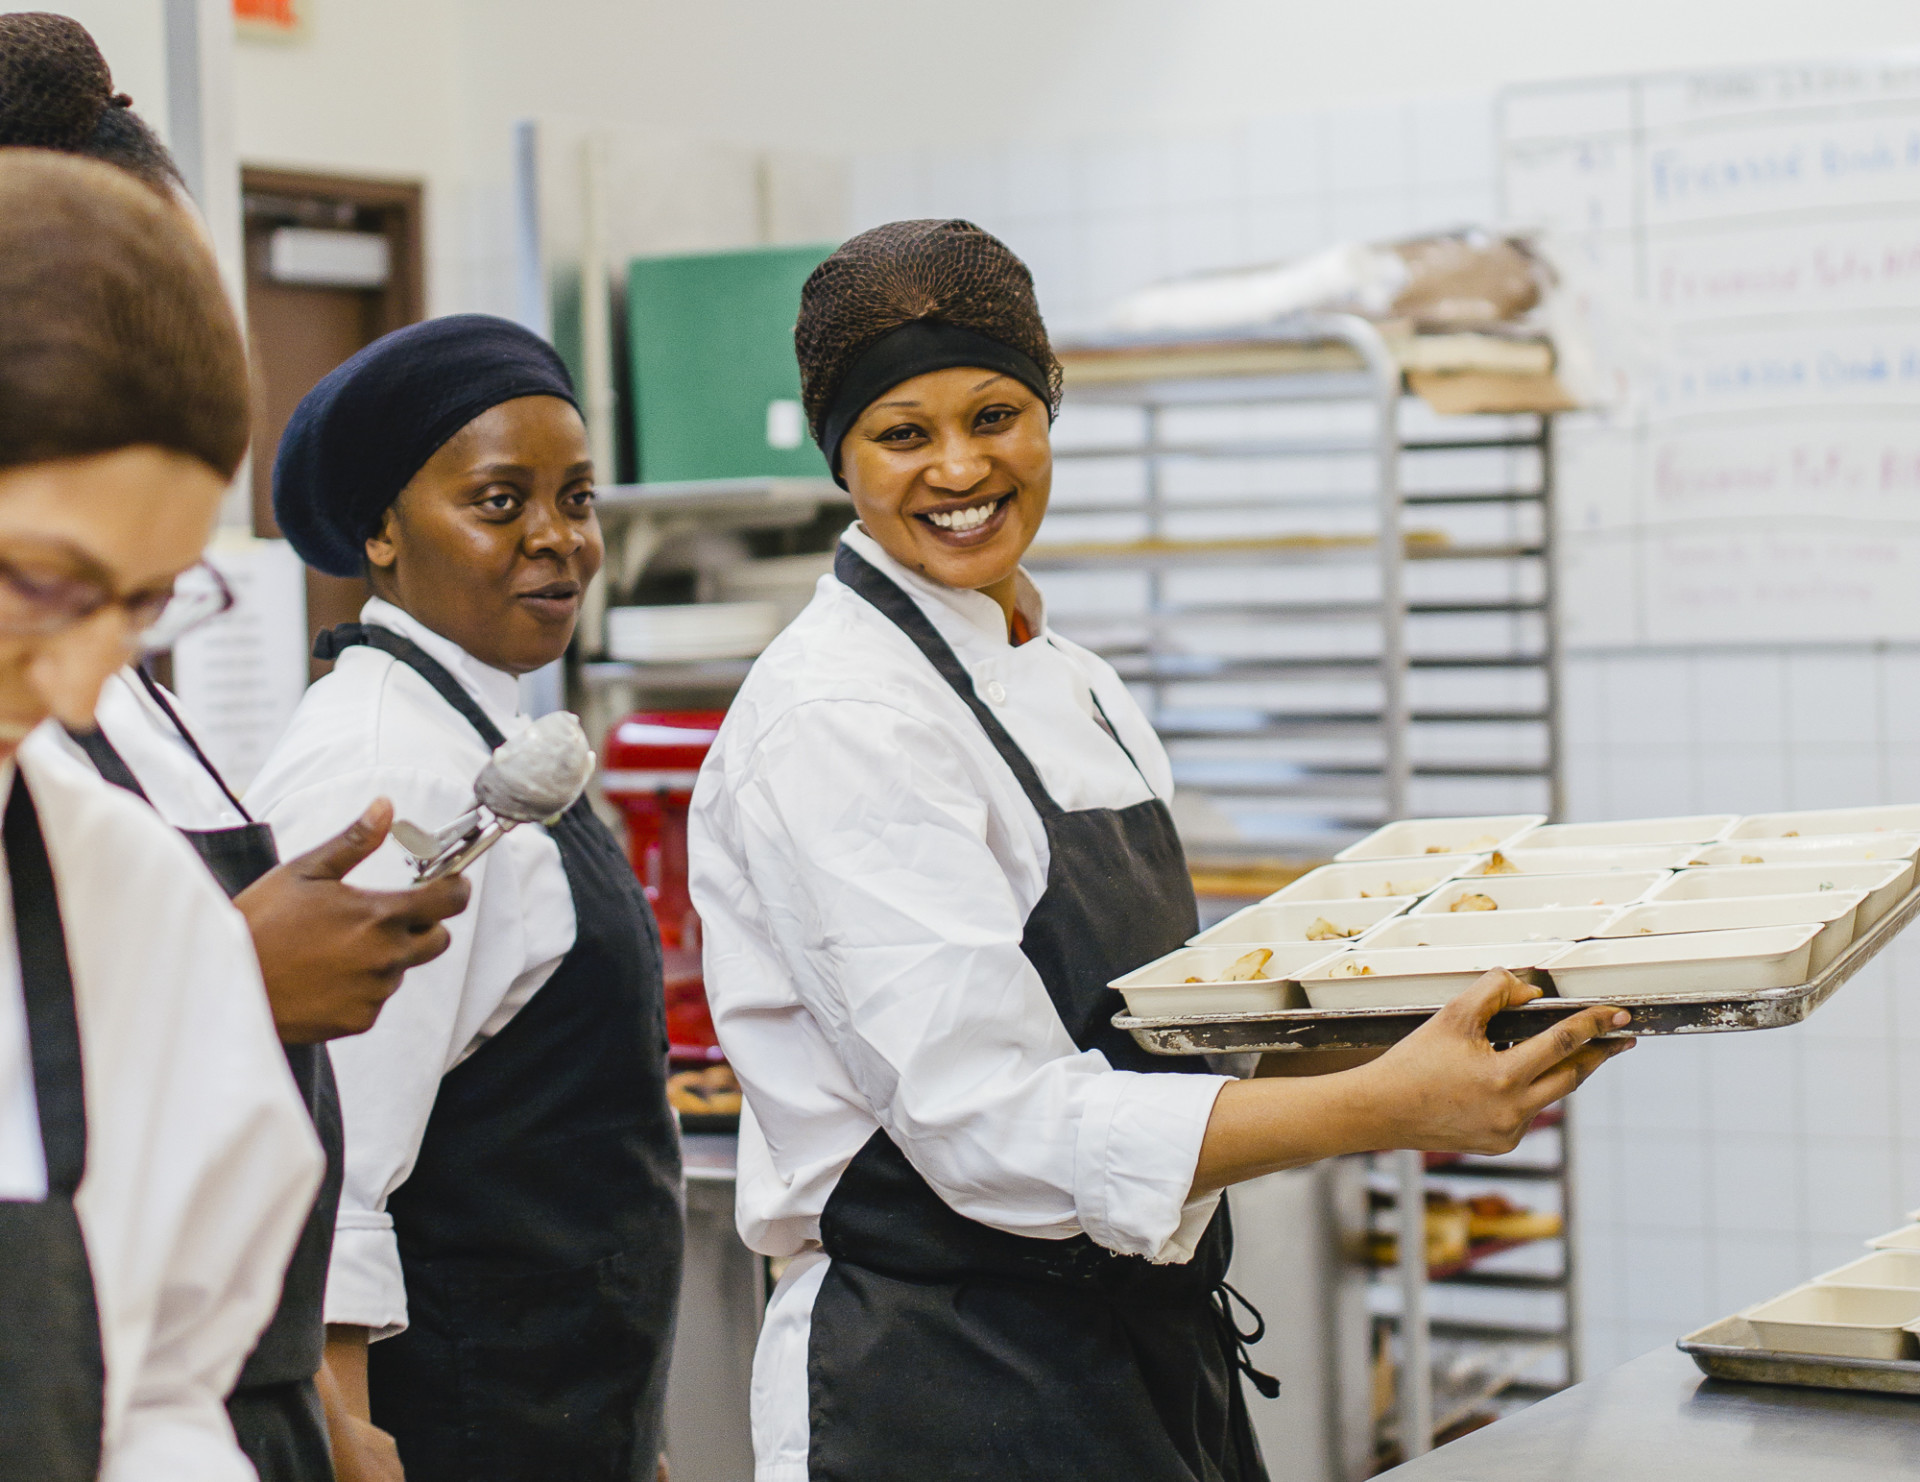 La Cantine pour tous brings together community organizations, social insertion and social economy enterprises that specialize in the production of healthy and affordable meals.